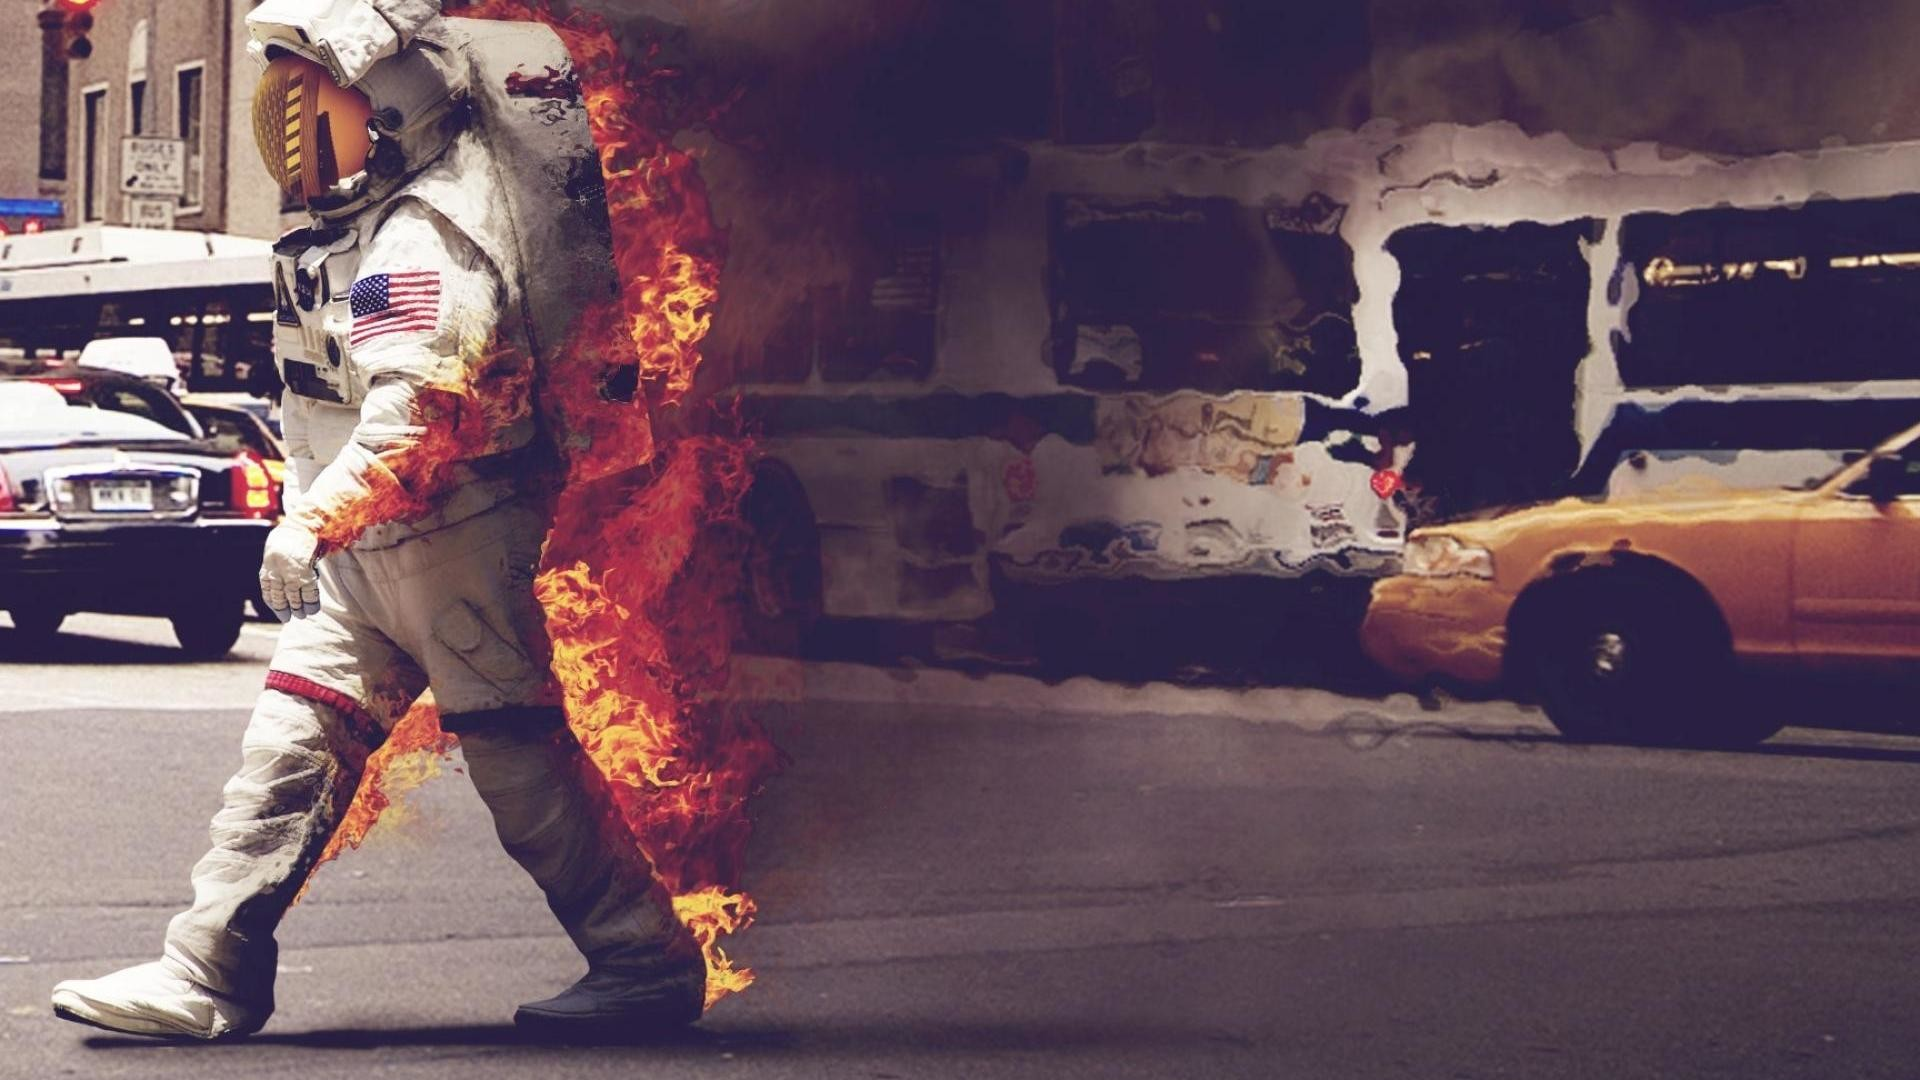 Astronaut On Fire Crossing The Road HD Rare Wallpaper Free HD .